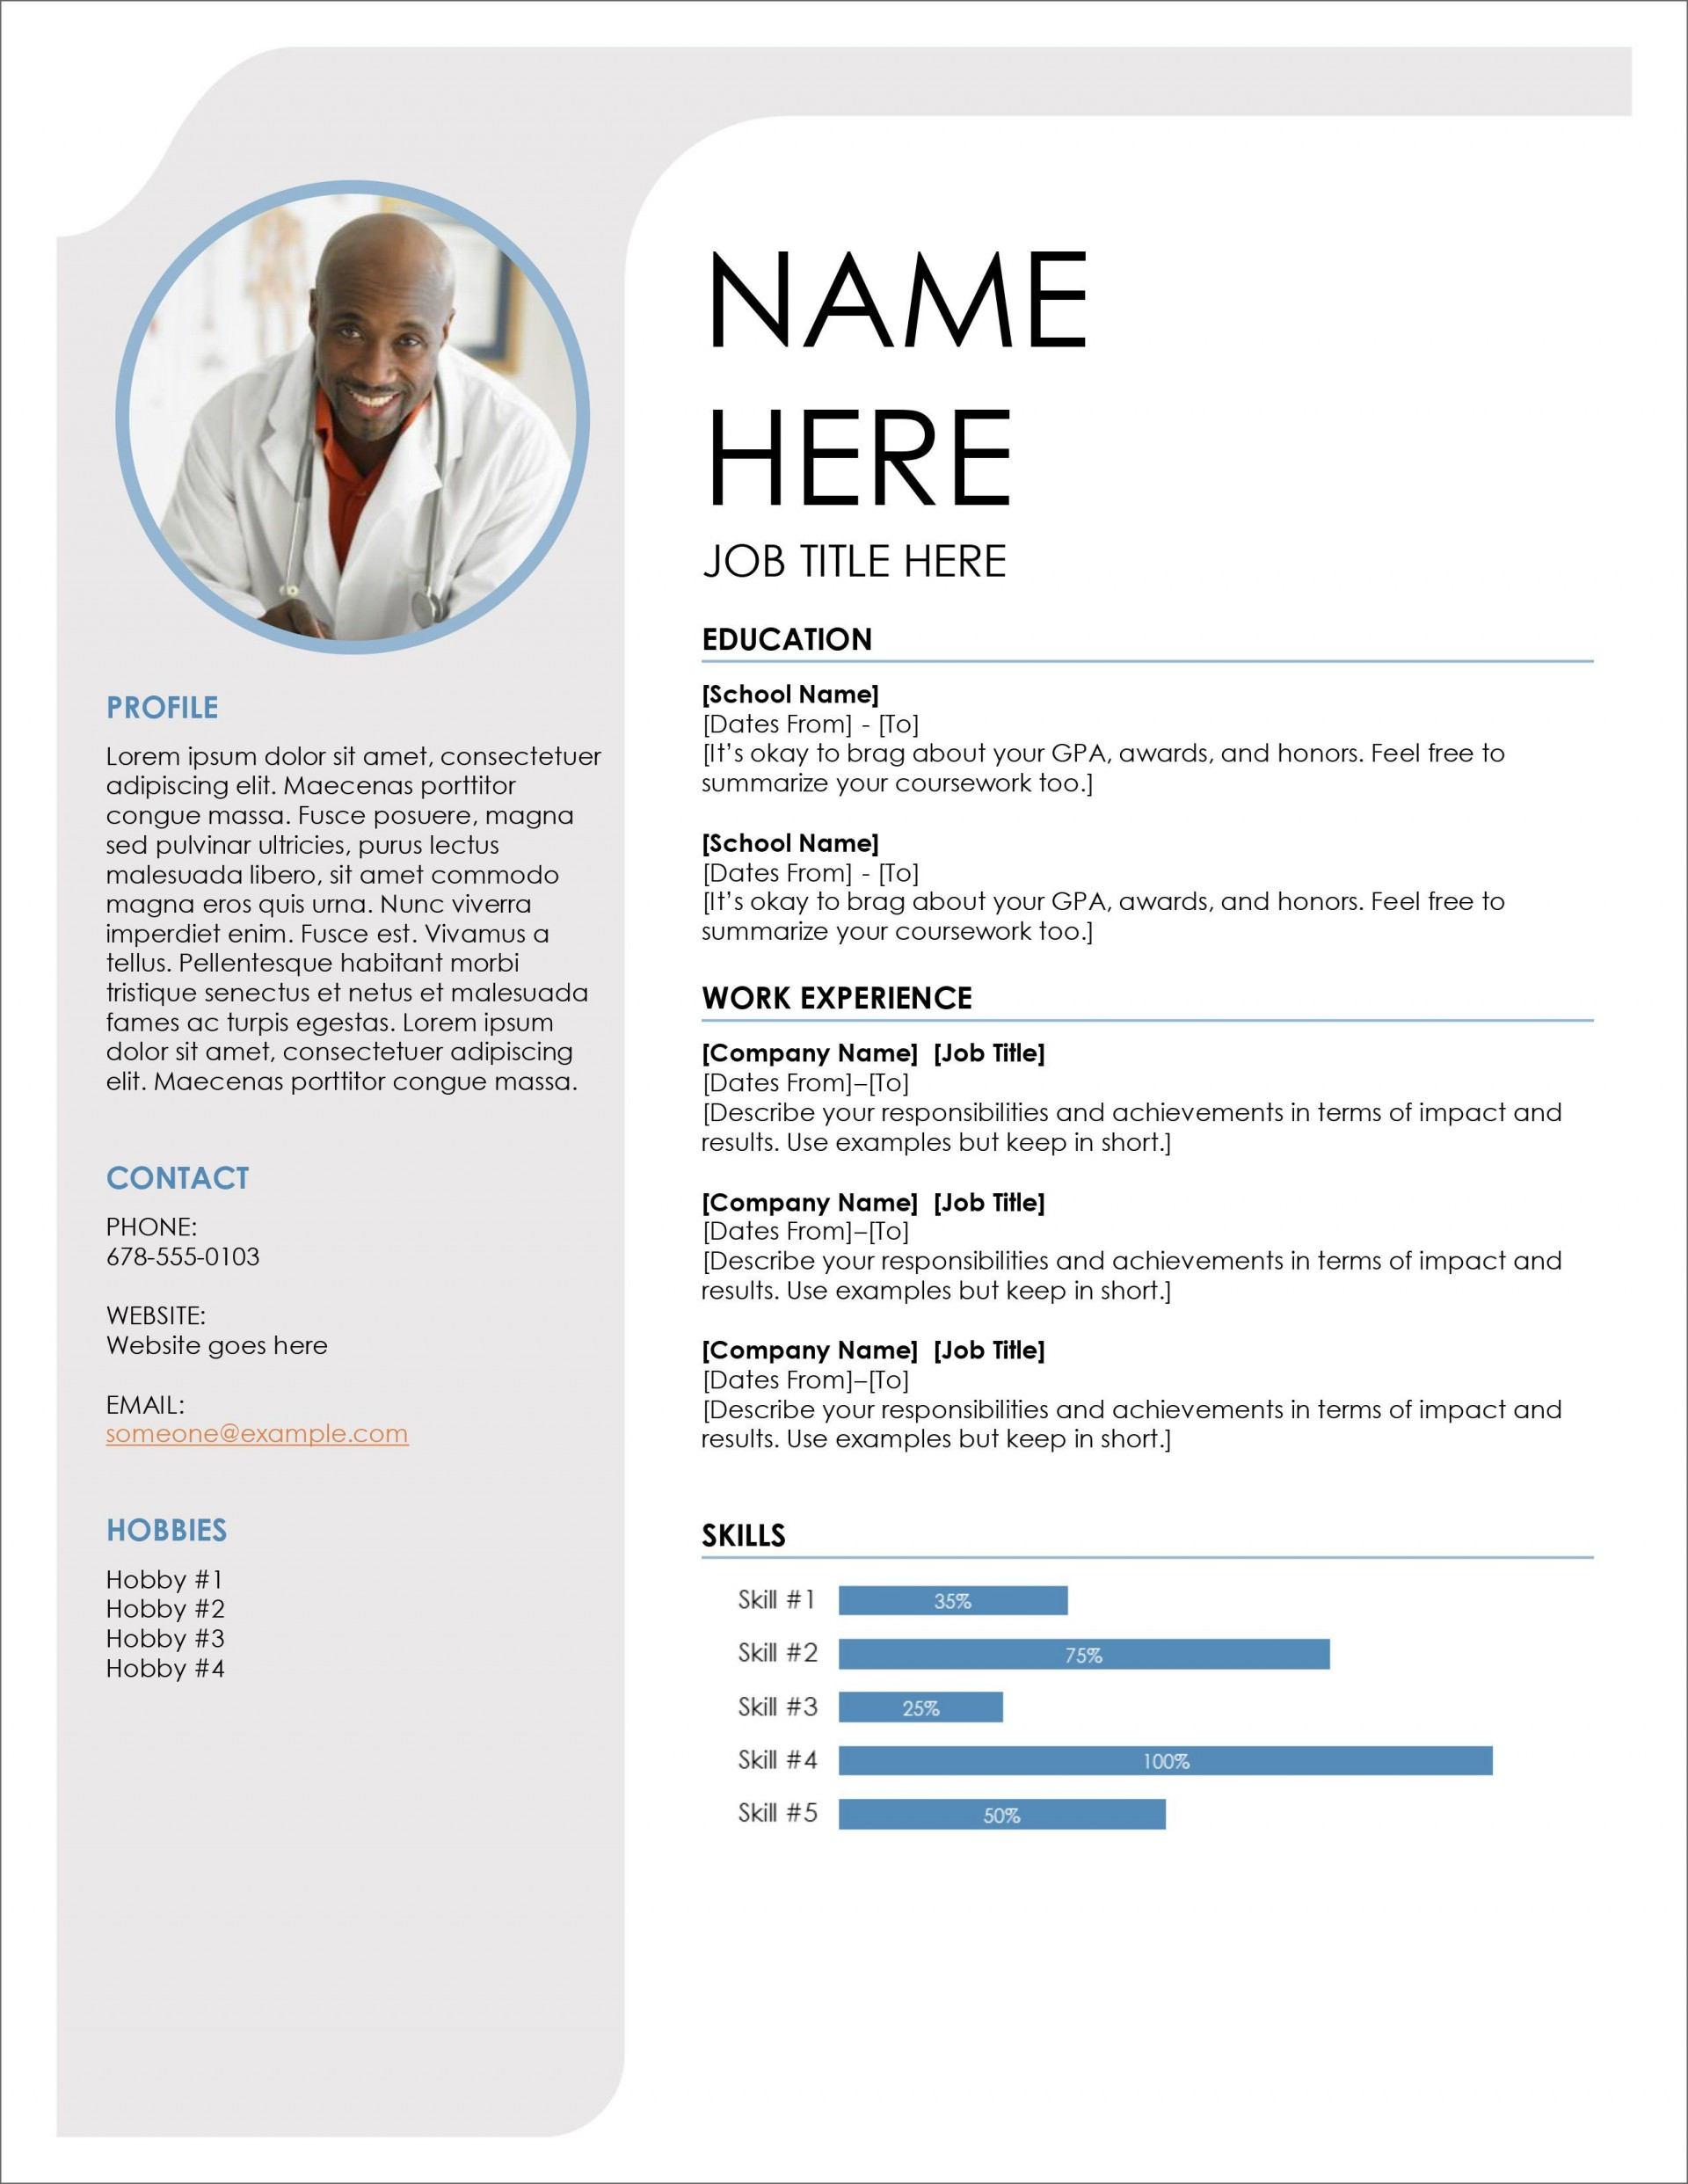 005 Remarkable Resume Template Free Word Doc Highest Clarity  Cv Download Document For Student1920